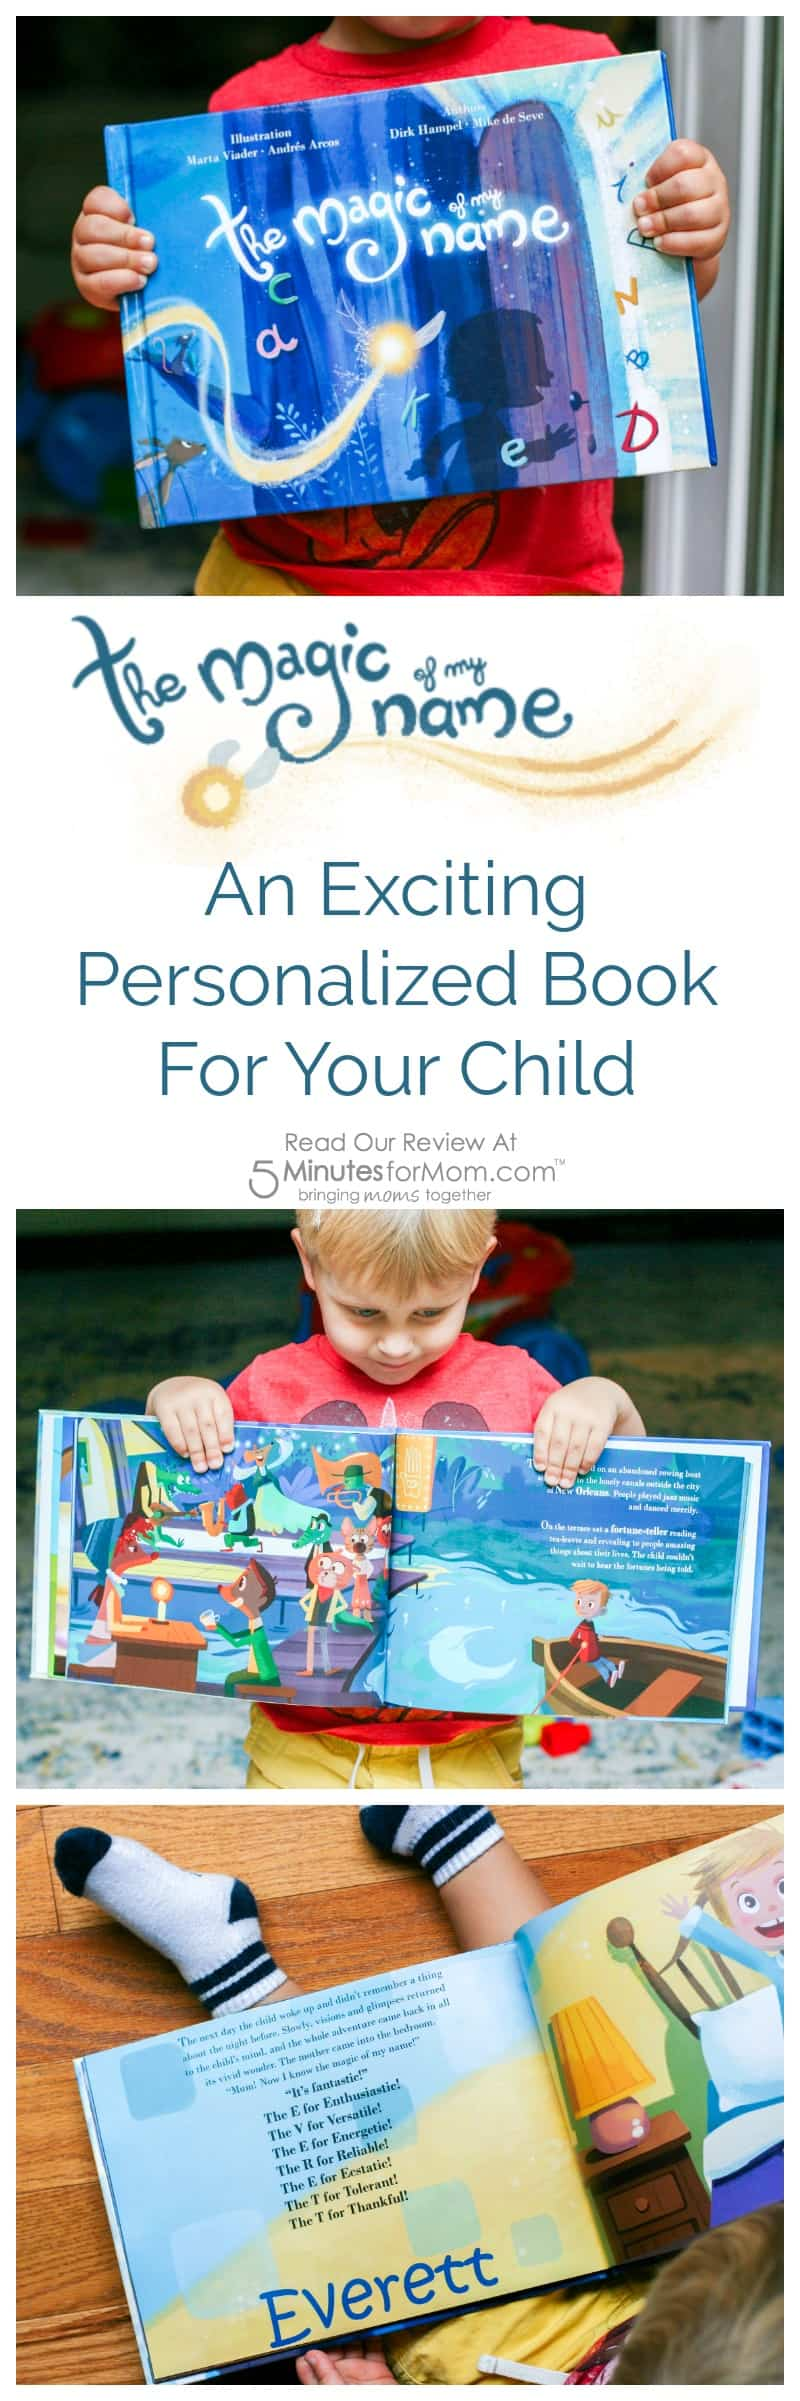 The Magic of My Name - An Exciting Personalized Book For Your Child - Book Review